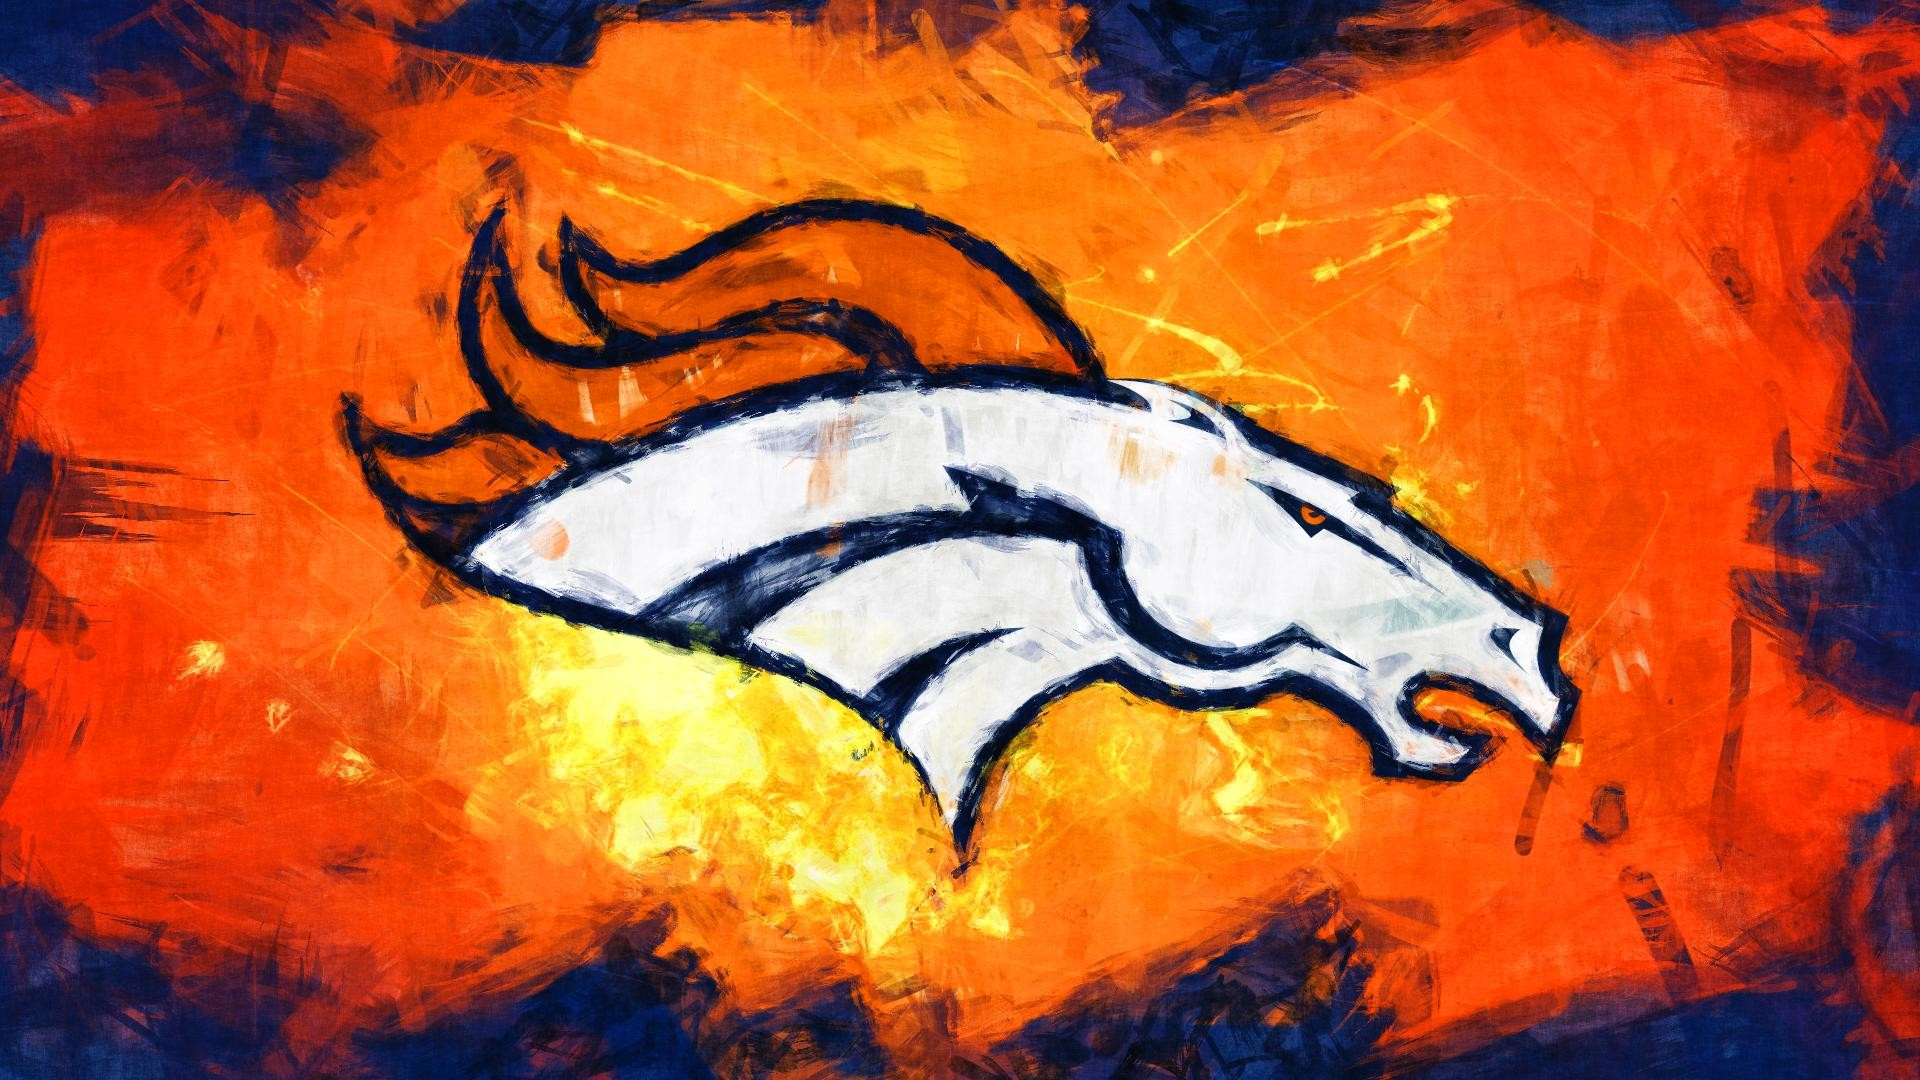 1920x1080 Denver Broncos Wallpapers Images Photos Pictures Backgrounds 1920×1080  Denver Broncos Wallpaper (49 Wallpapers